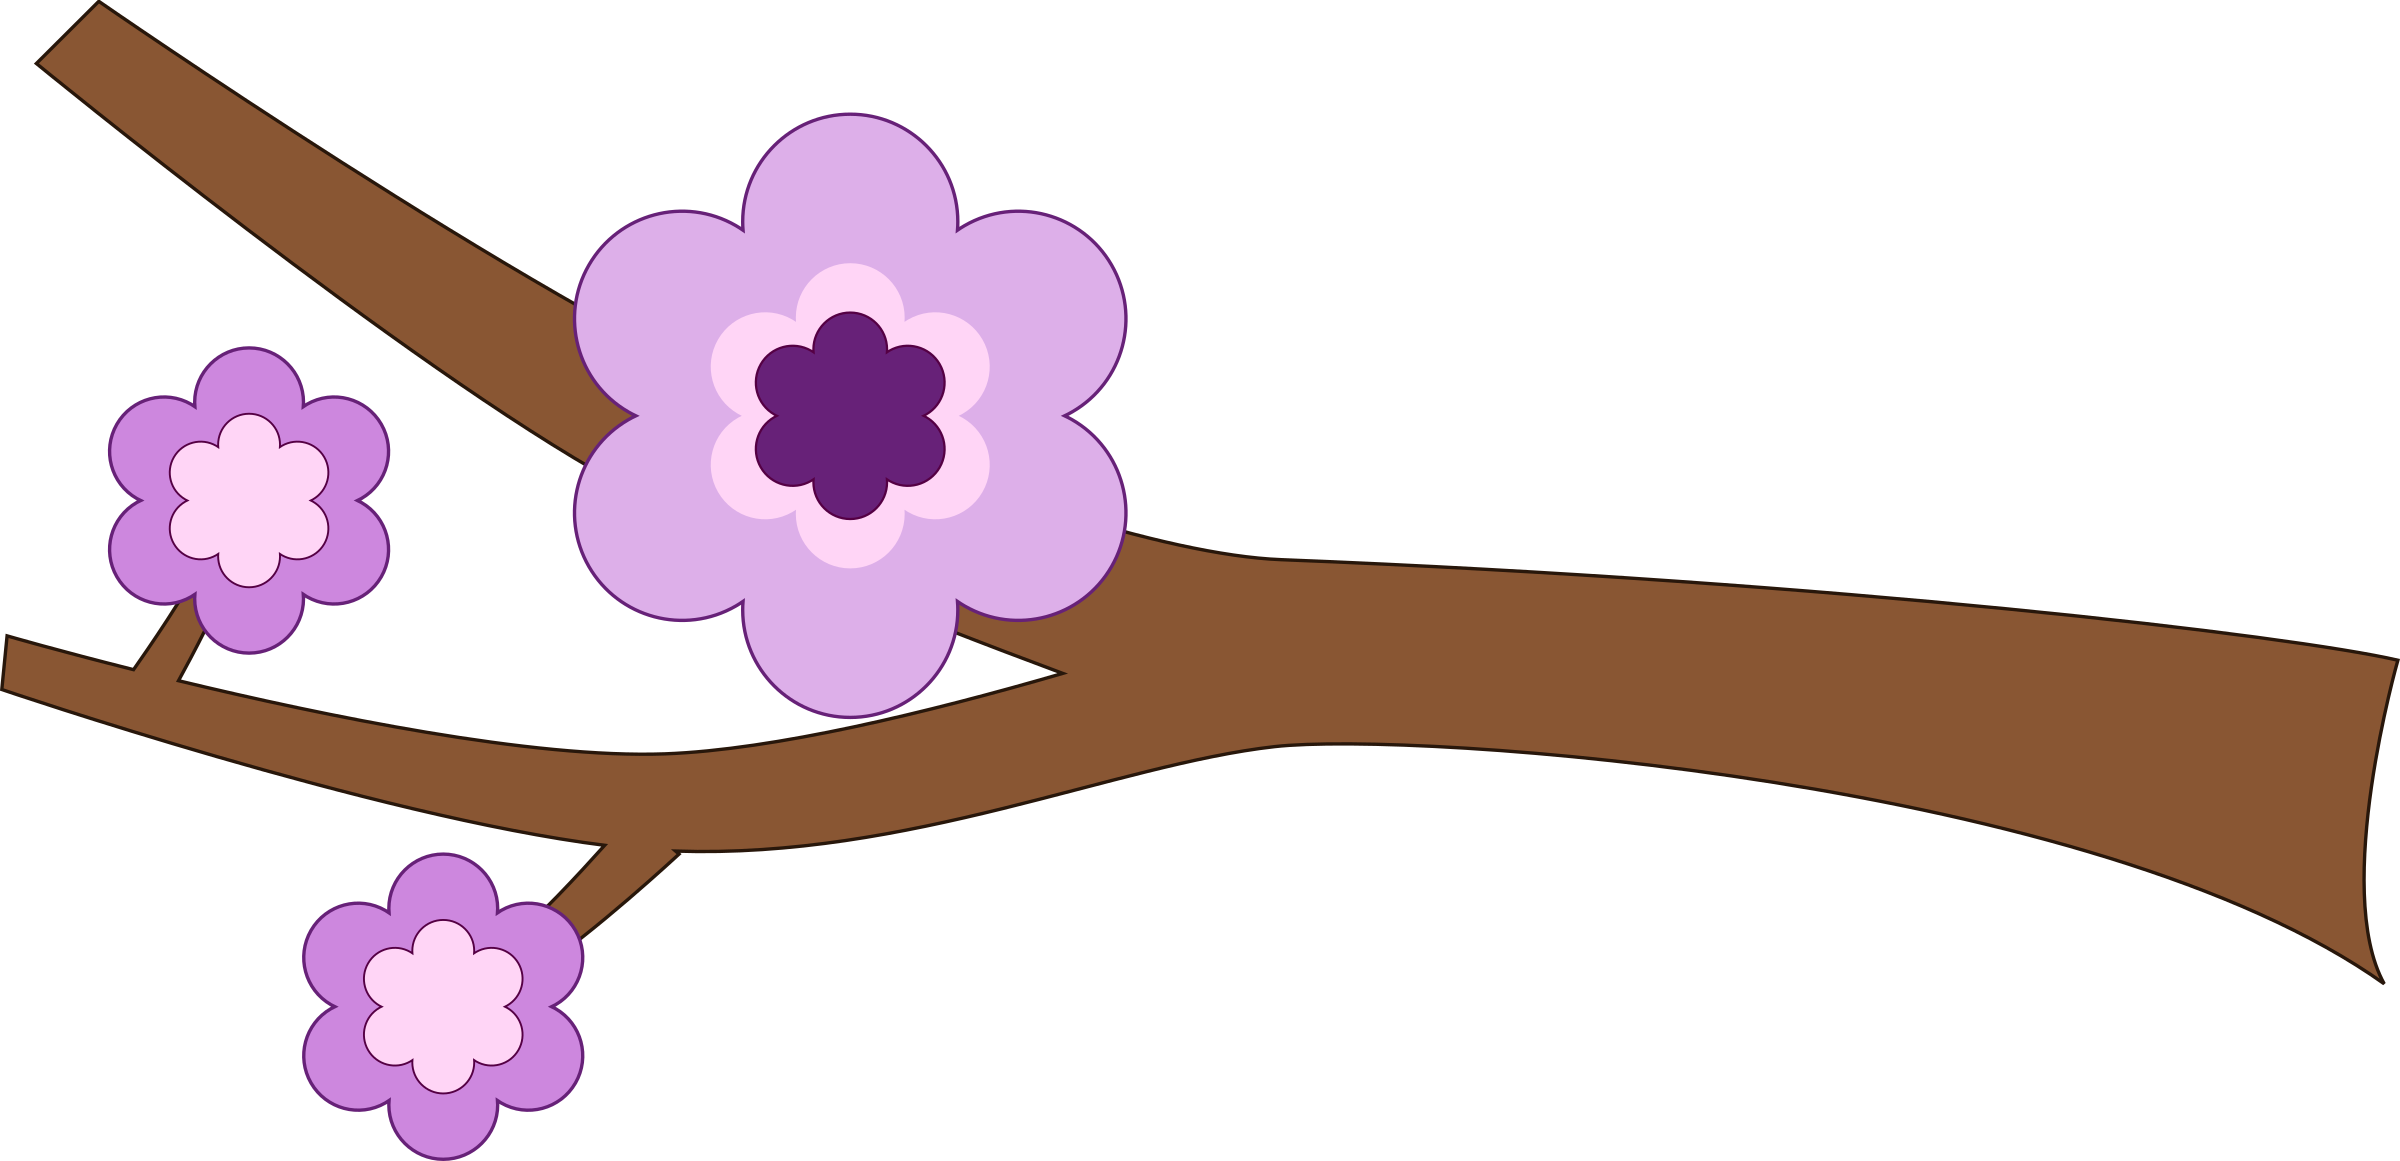 Purple Flower Longer branch by snydergd